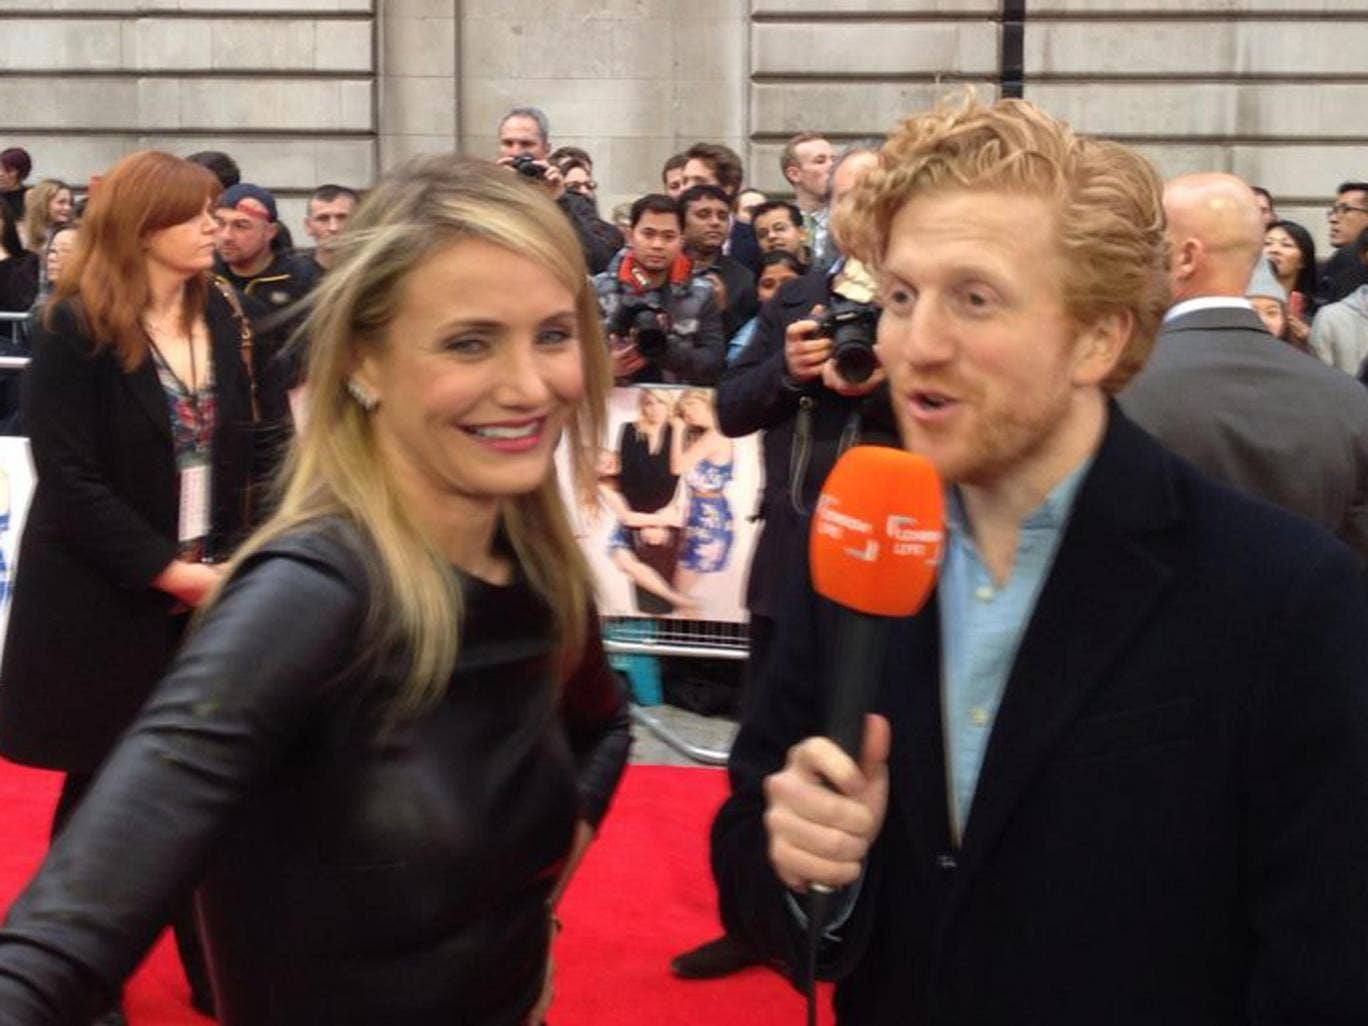 Luke Blackall interviews Cameron Diaz on the red carpet for the premiere of 'The Other Woman'